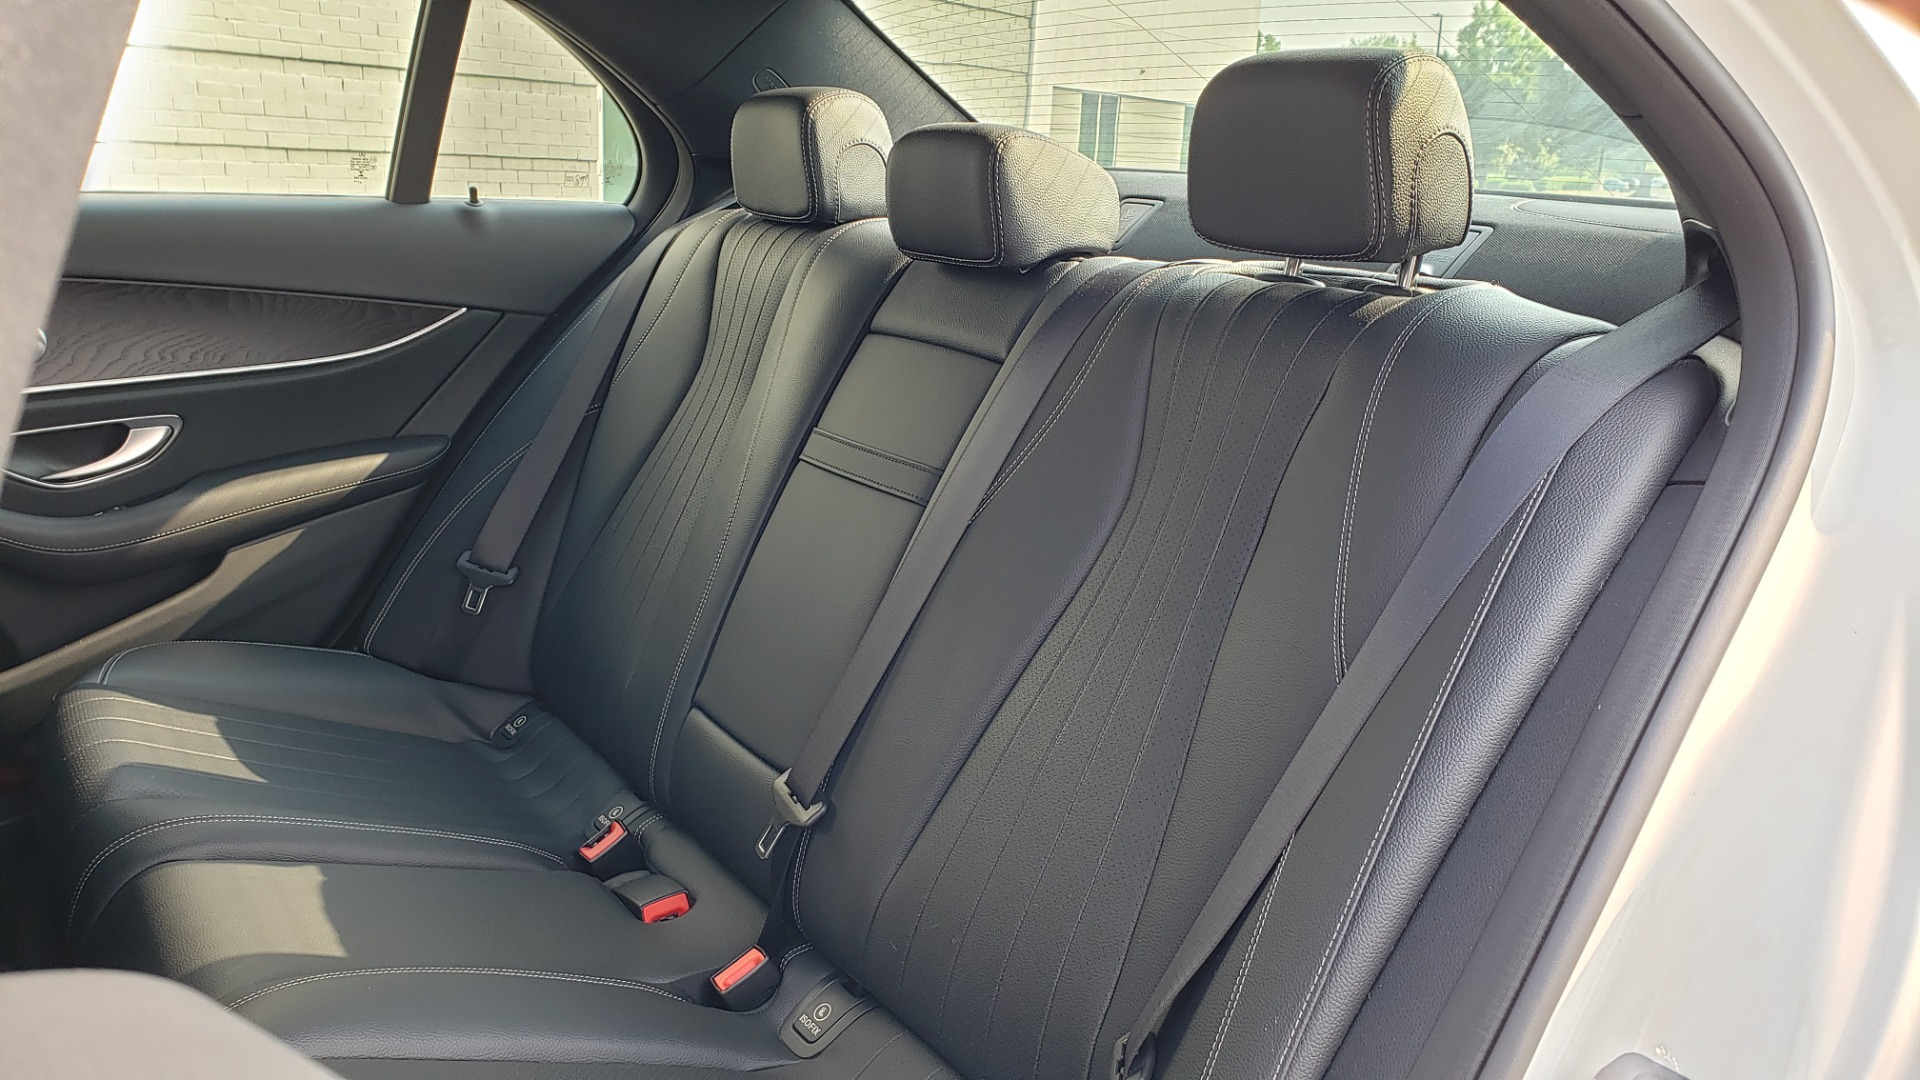 Used 2018 Mercedes-Benz E-CLASS E 300 4MATIC / PREMIUM / NAV / PANO-ROOF / BURMESTER / REARVIEW for sale $41,995 at Formula Imports in Charlotte NC 28227 57